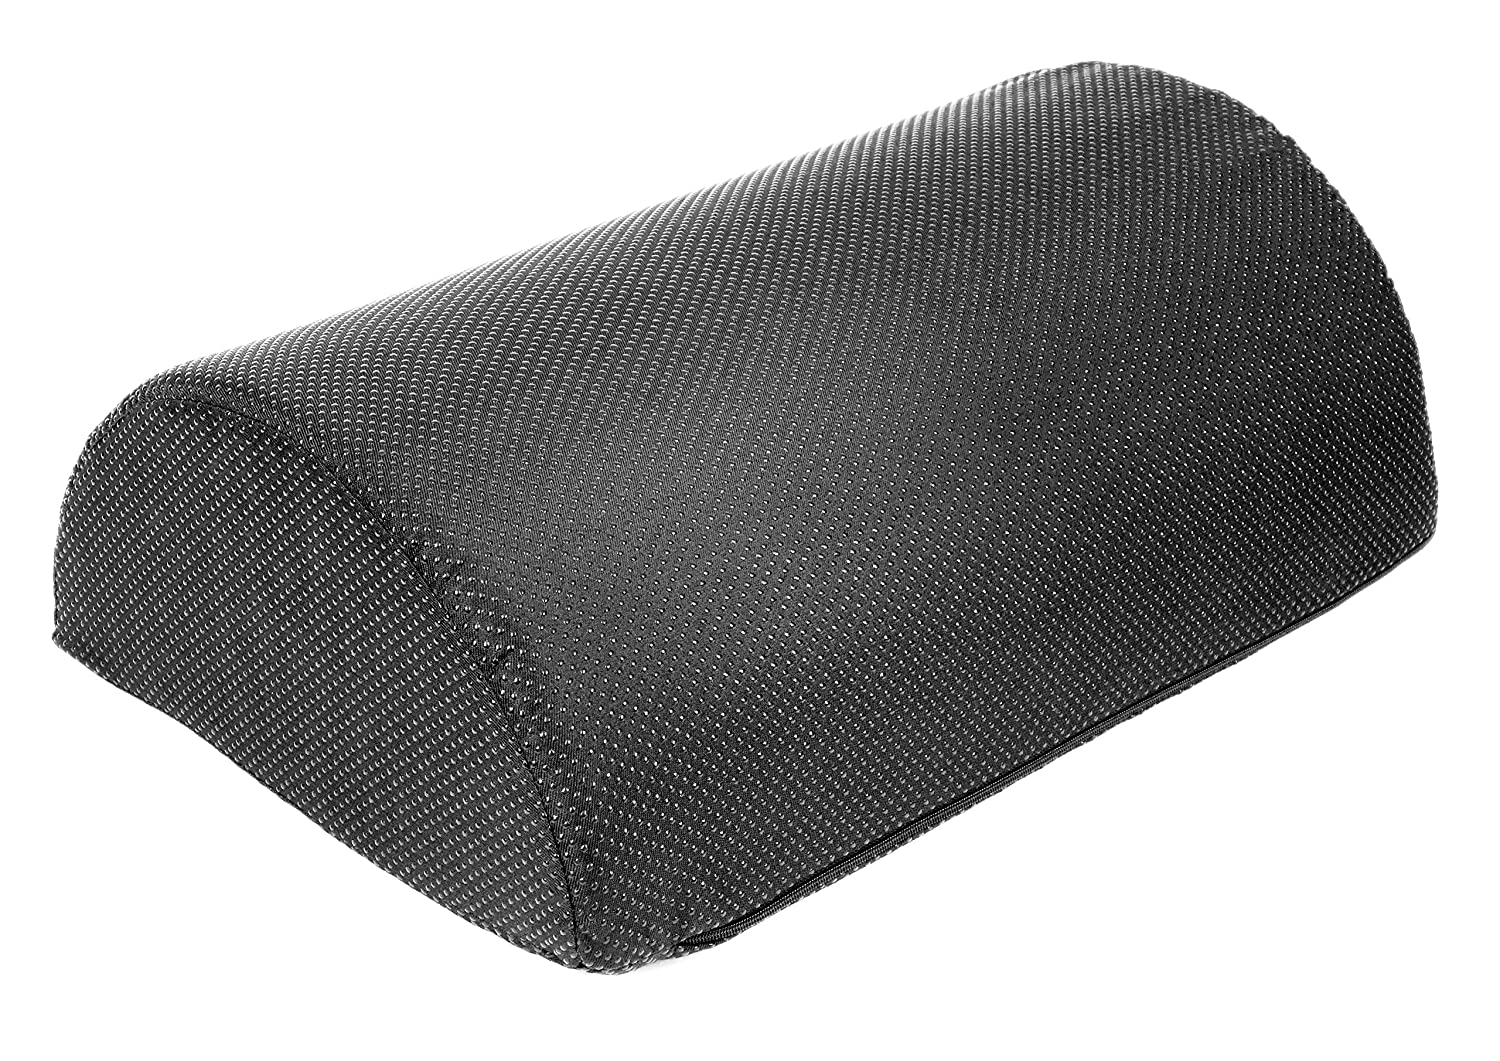 Foot Rest Cushion, Half Cylinder Design, for Home and Office (Medium) Essentials Home & Office